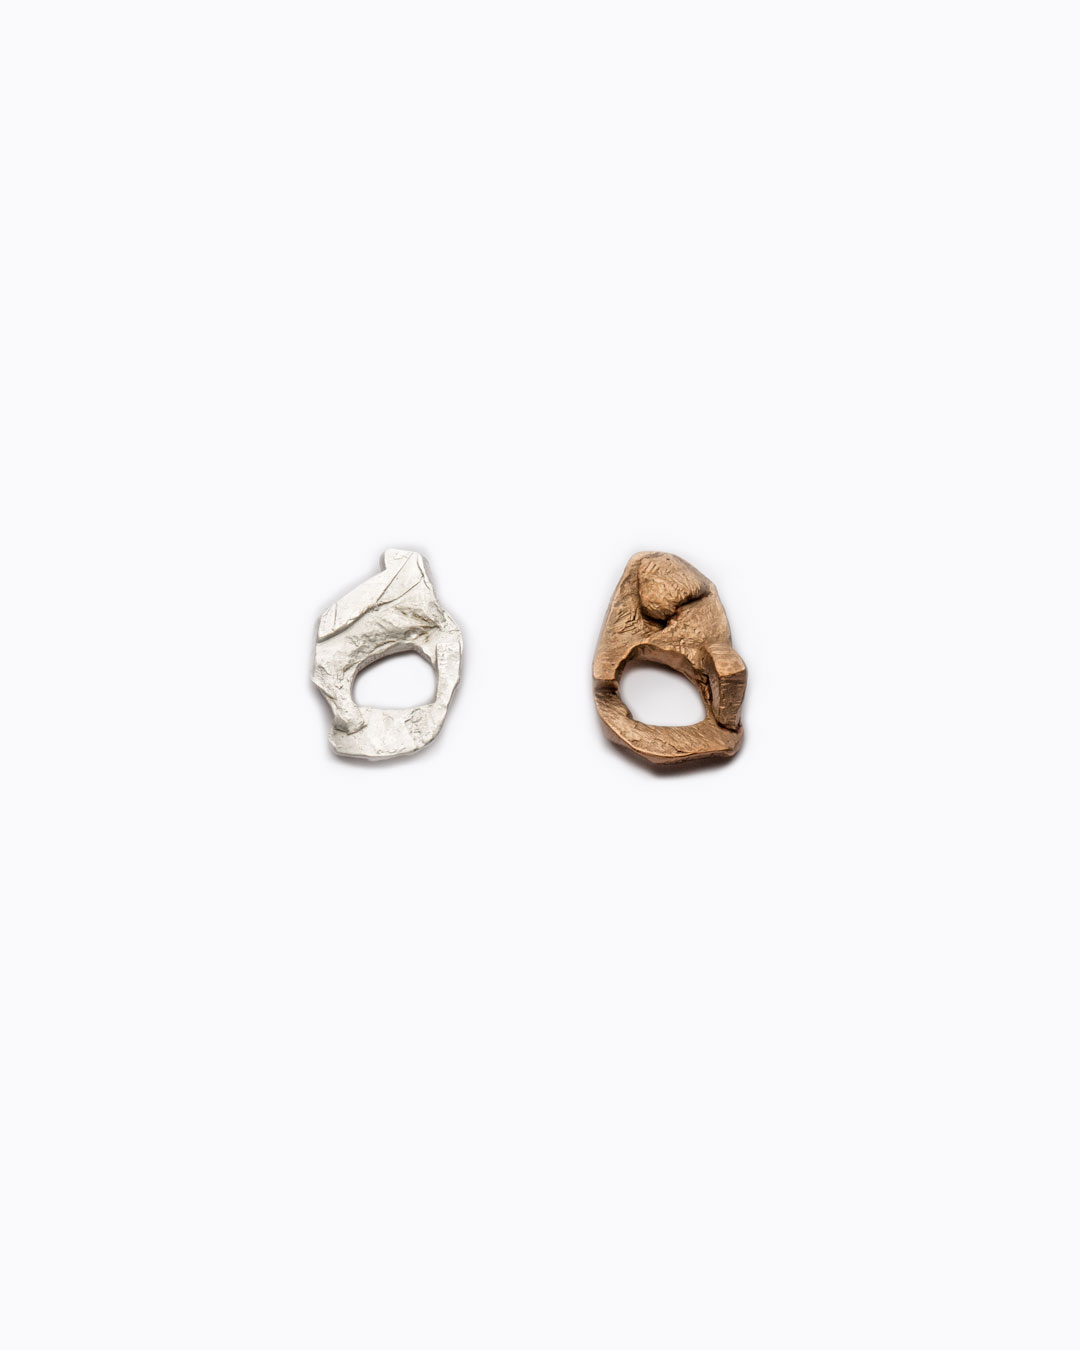 Iris Bodemer, untitled, 2012, ring; silver, 30 x 55 x 5 mm (left), €750